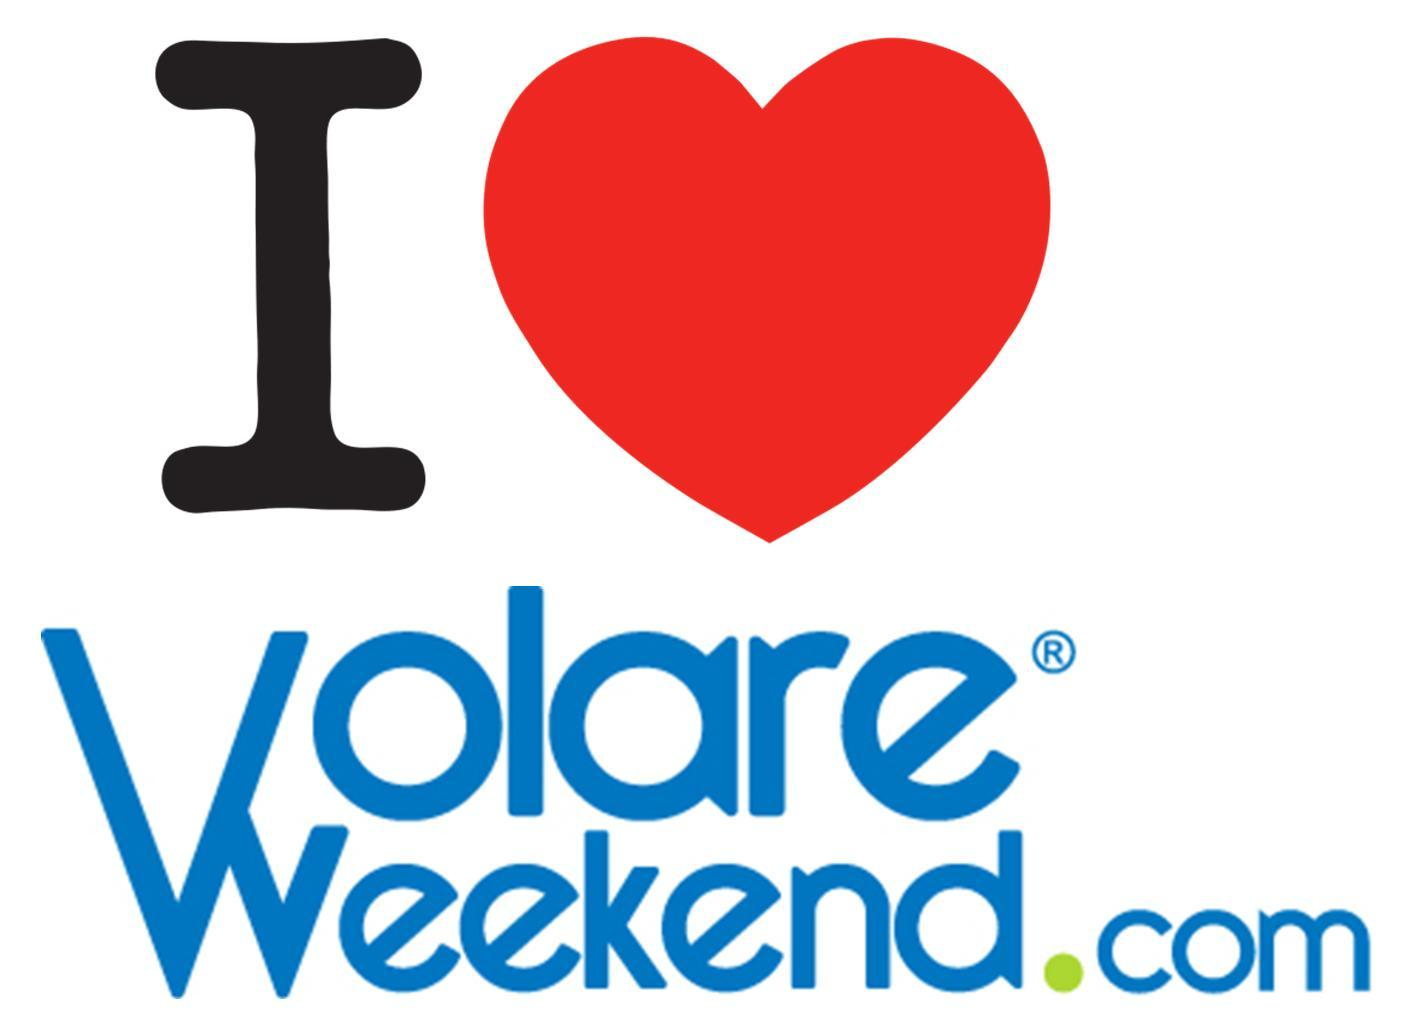 I_Love_VolareWeekend